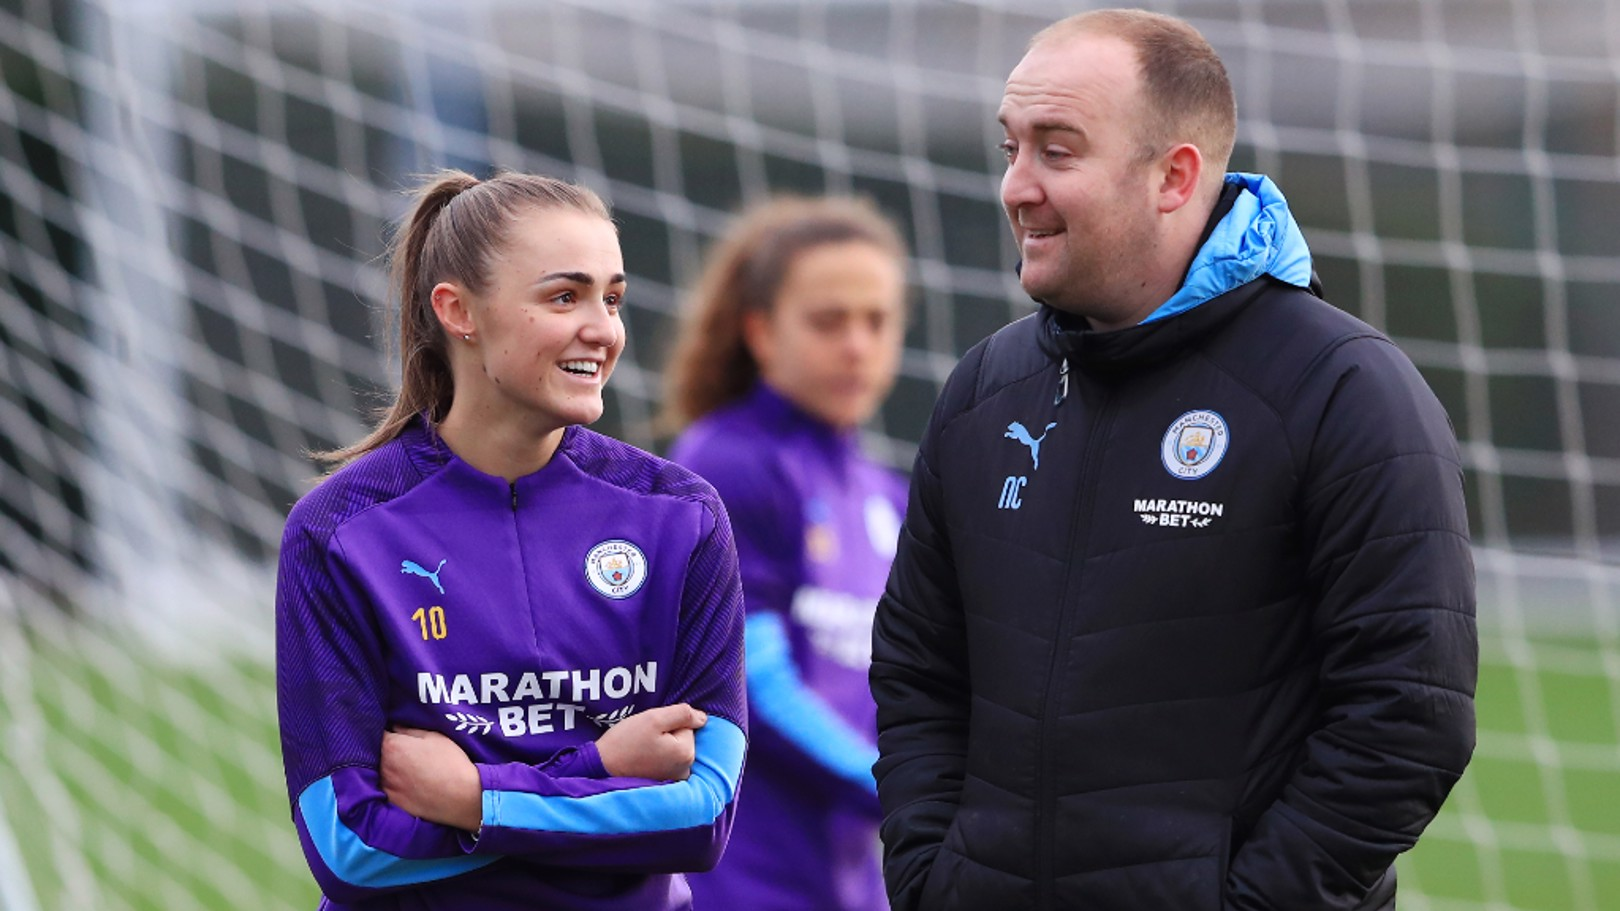 IMPRESSED: Nick Cushing has been pleased with Georgia Stanway's performances at right-back